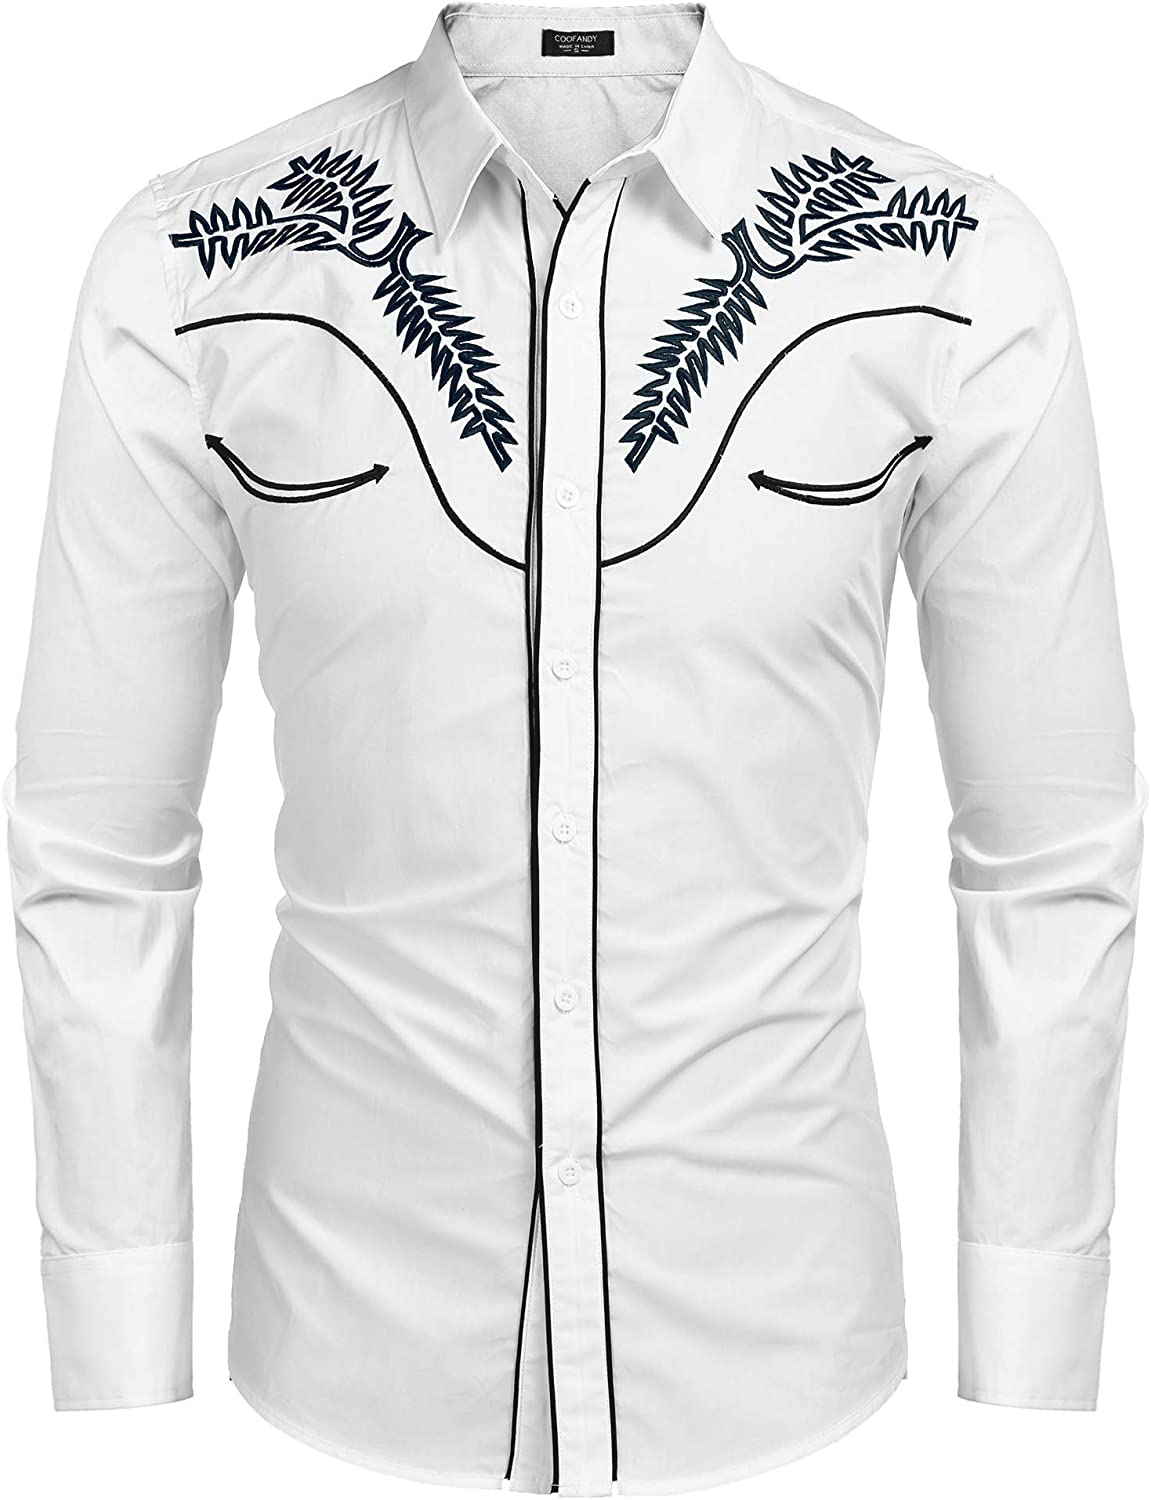 COOFANDY Mens Western Shirts Long Sleeve Slim Fit Embroideres Cowboy Casual Button Down Shirt